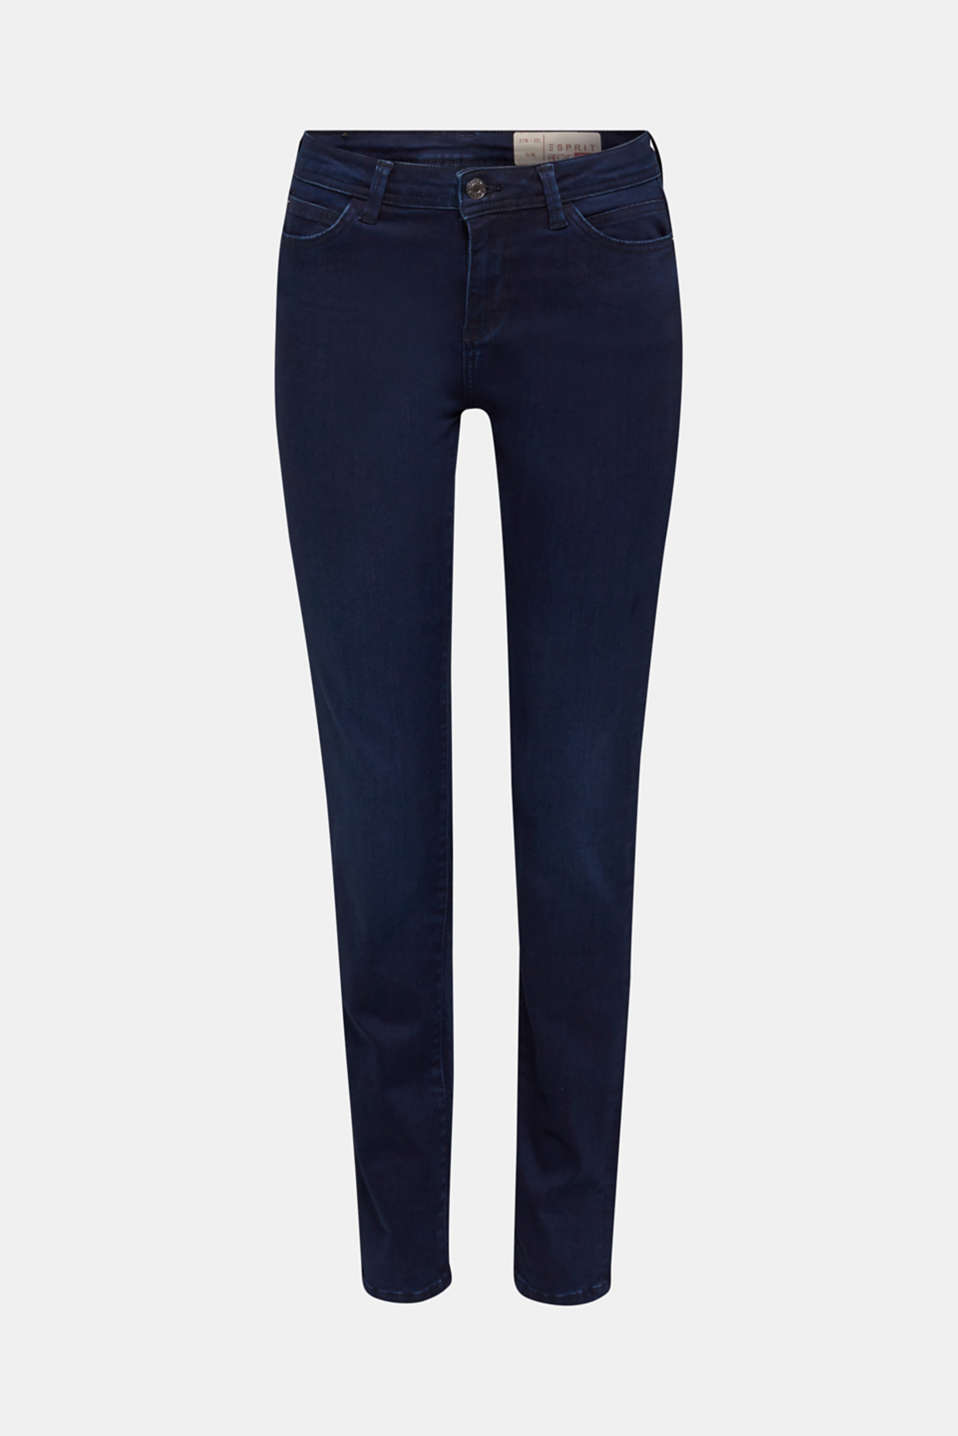 REPREVE stretch jeans with recycled polyester, BLUE DARK WASH, detail image number 7